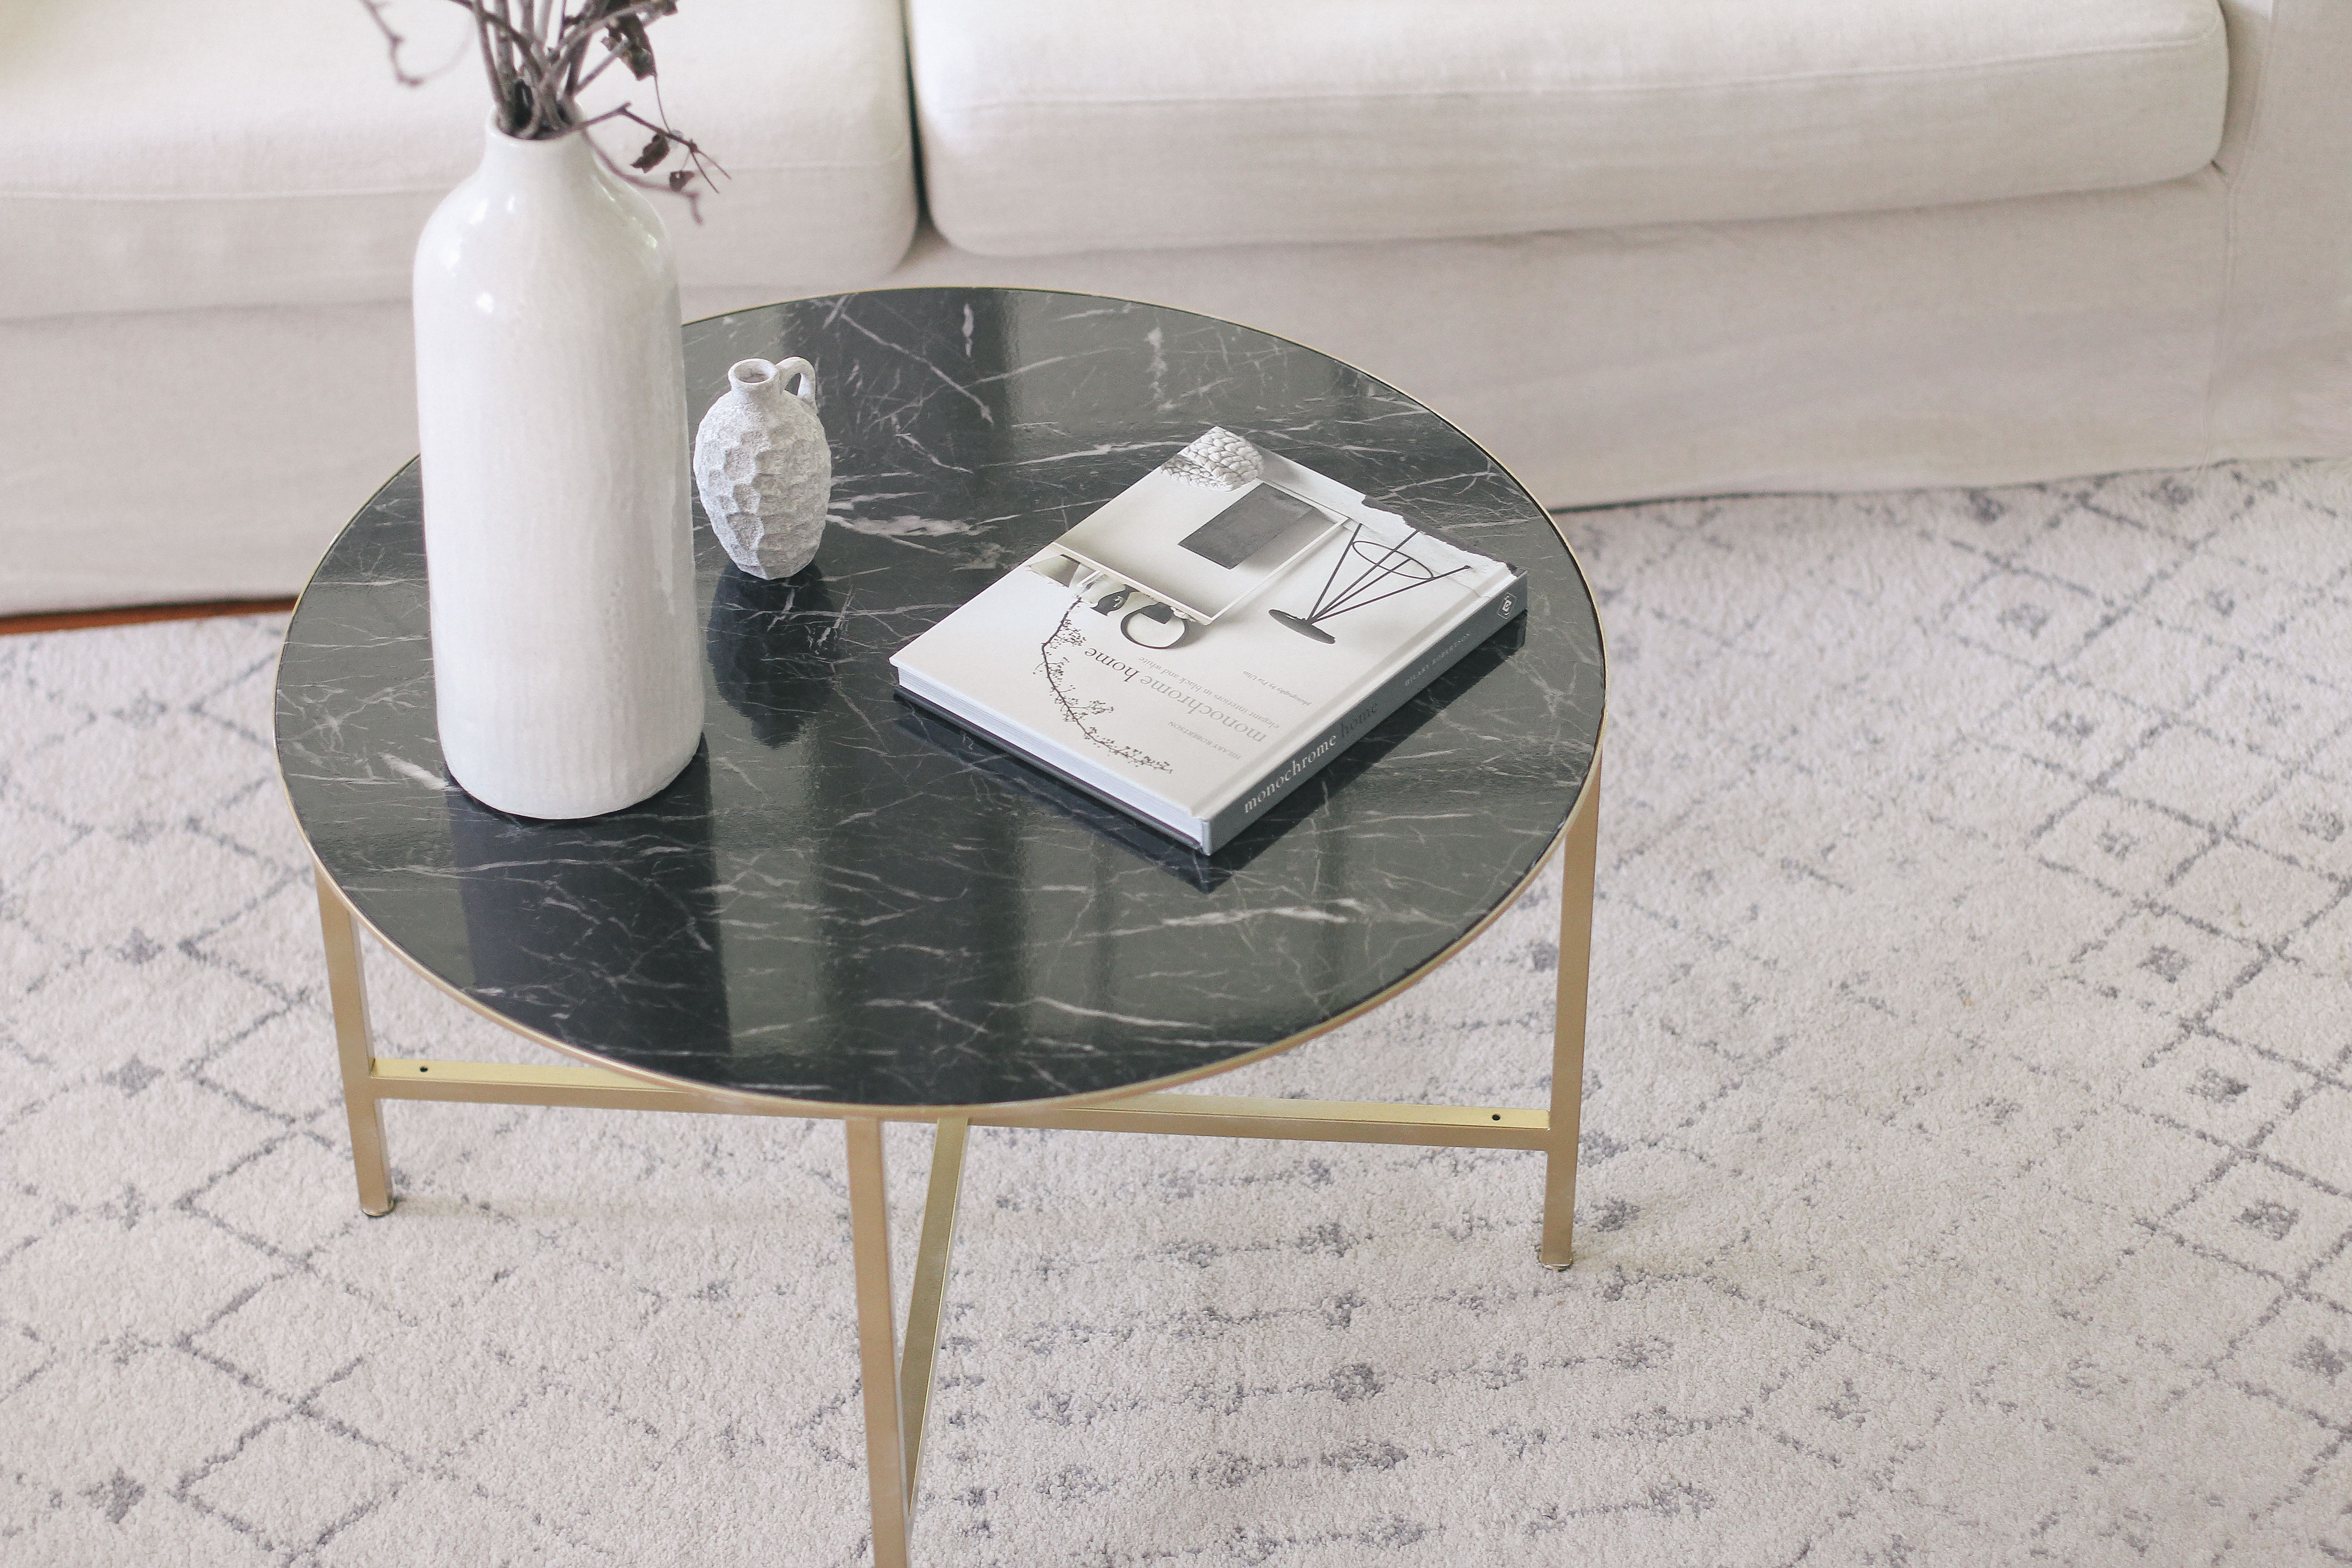 Faux Marble Top Coffee Table Ikea Coffee Table Marble Top Coffee Table Marble Furniture [ 1500 x 1000 Pixel ]